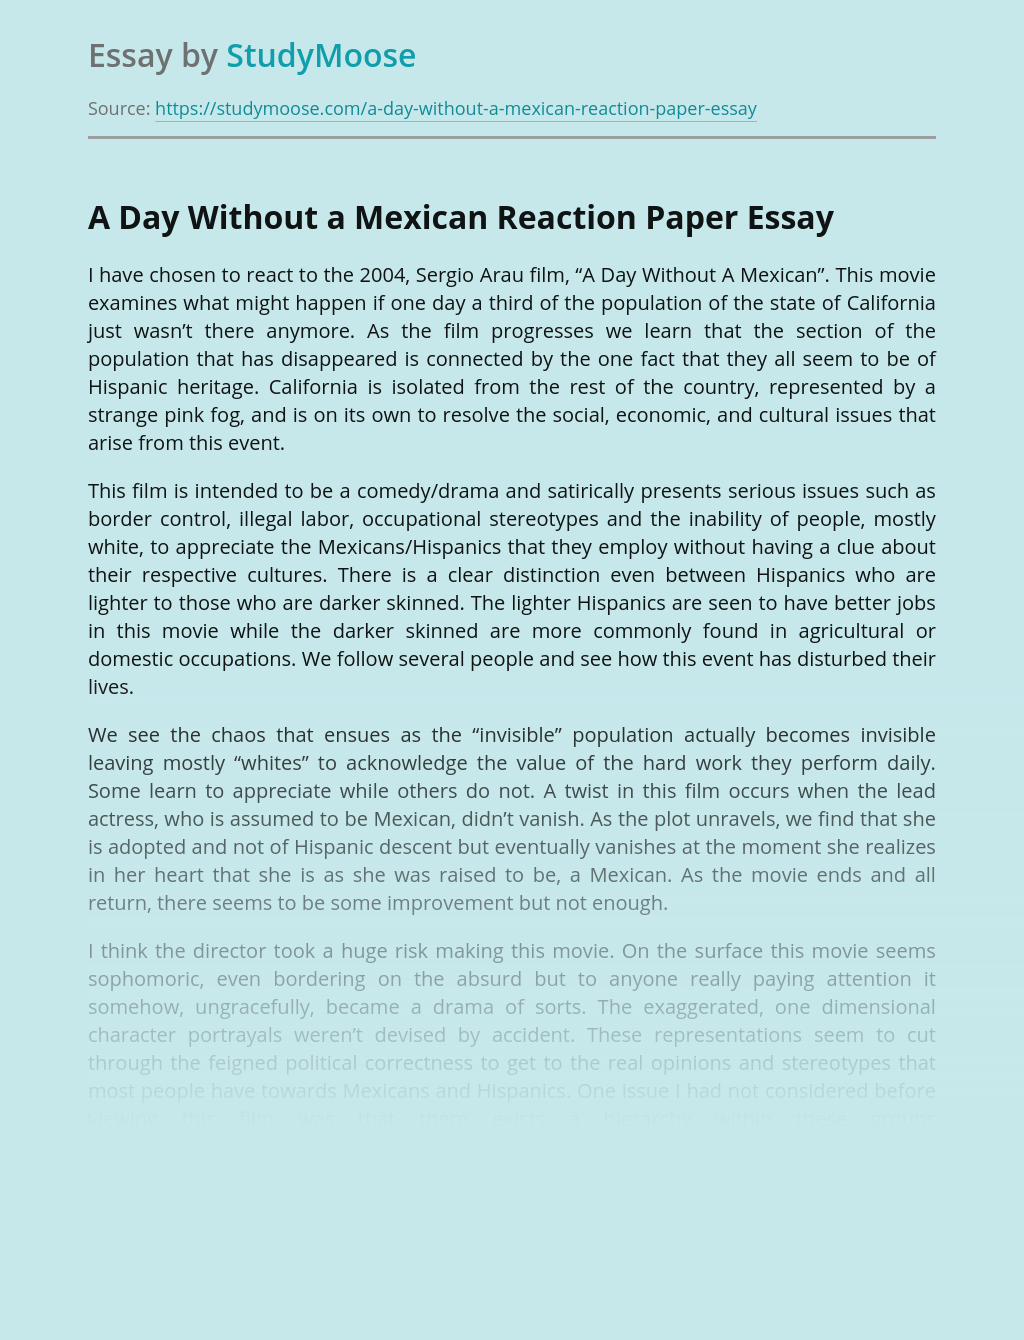 A Day Without a Mexican Reaction Paper